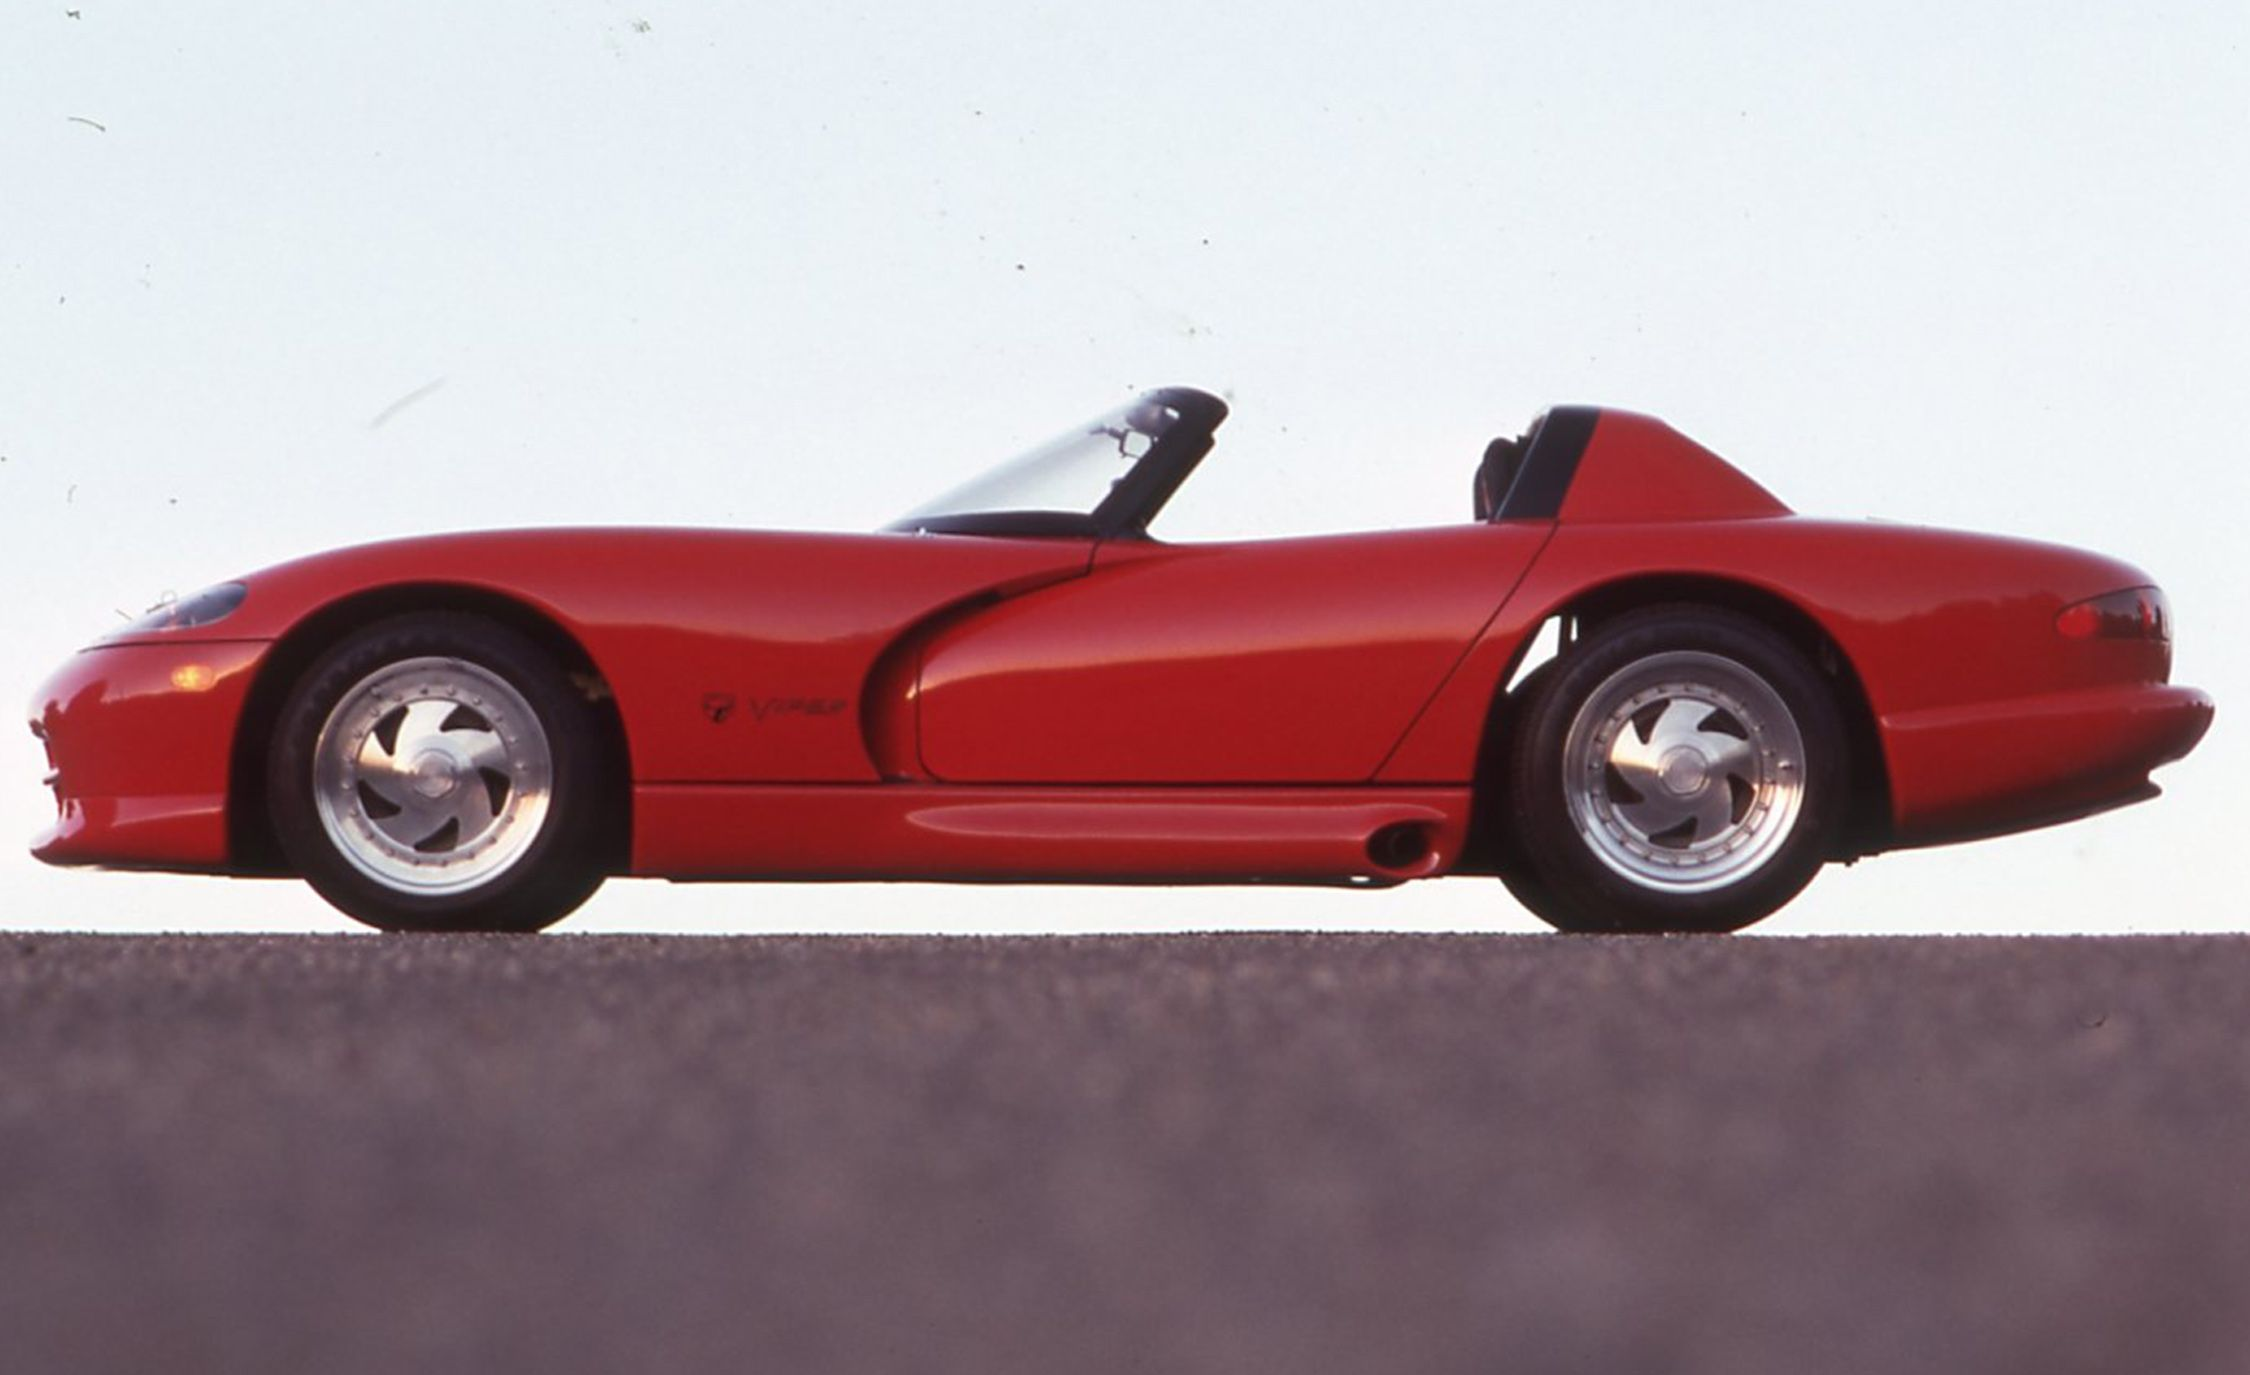 From the Archives: Our Original 1990 First Look at the Dodge Viper!